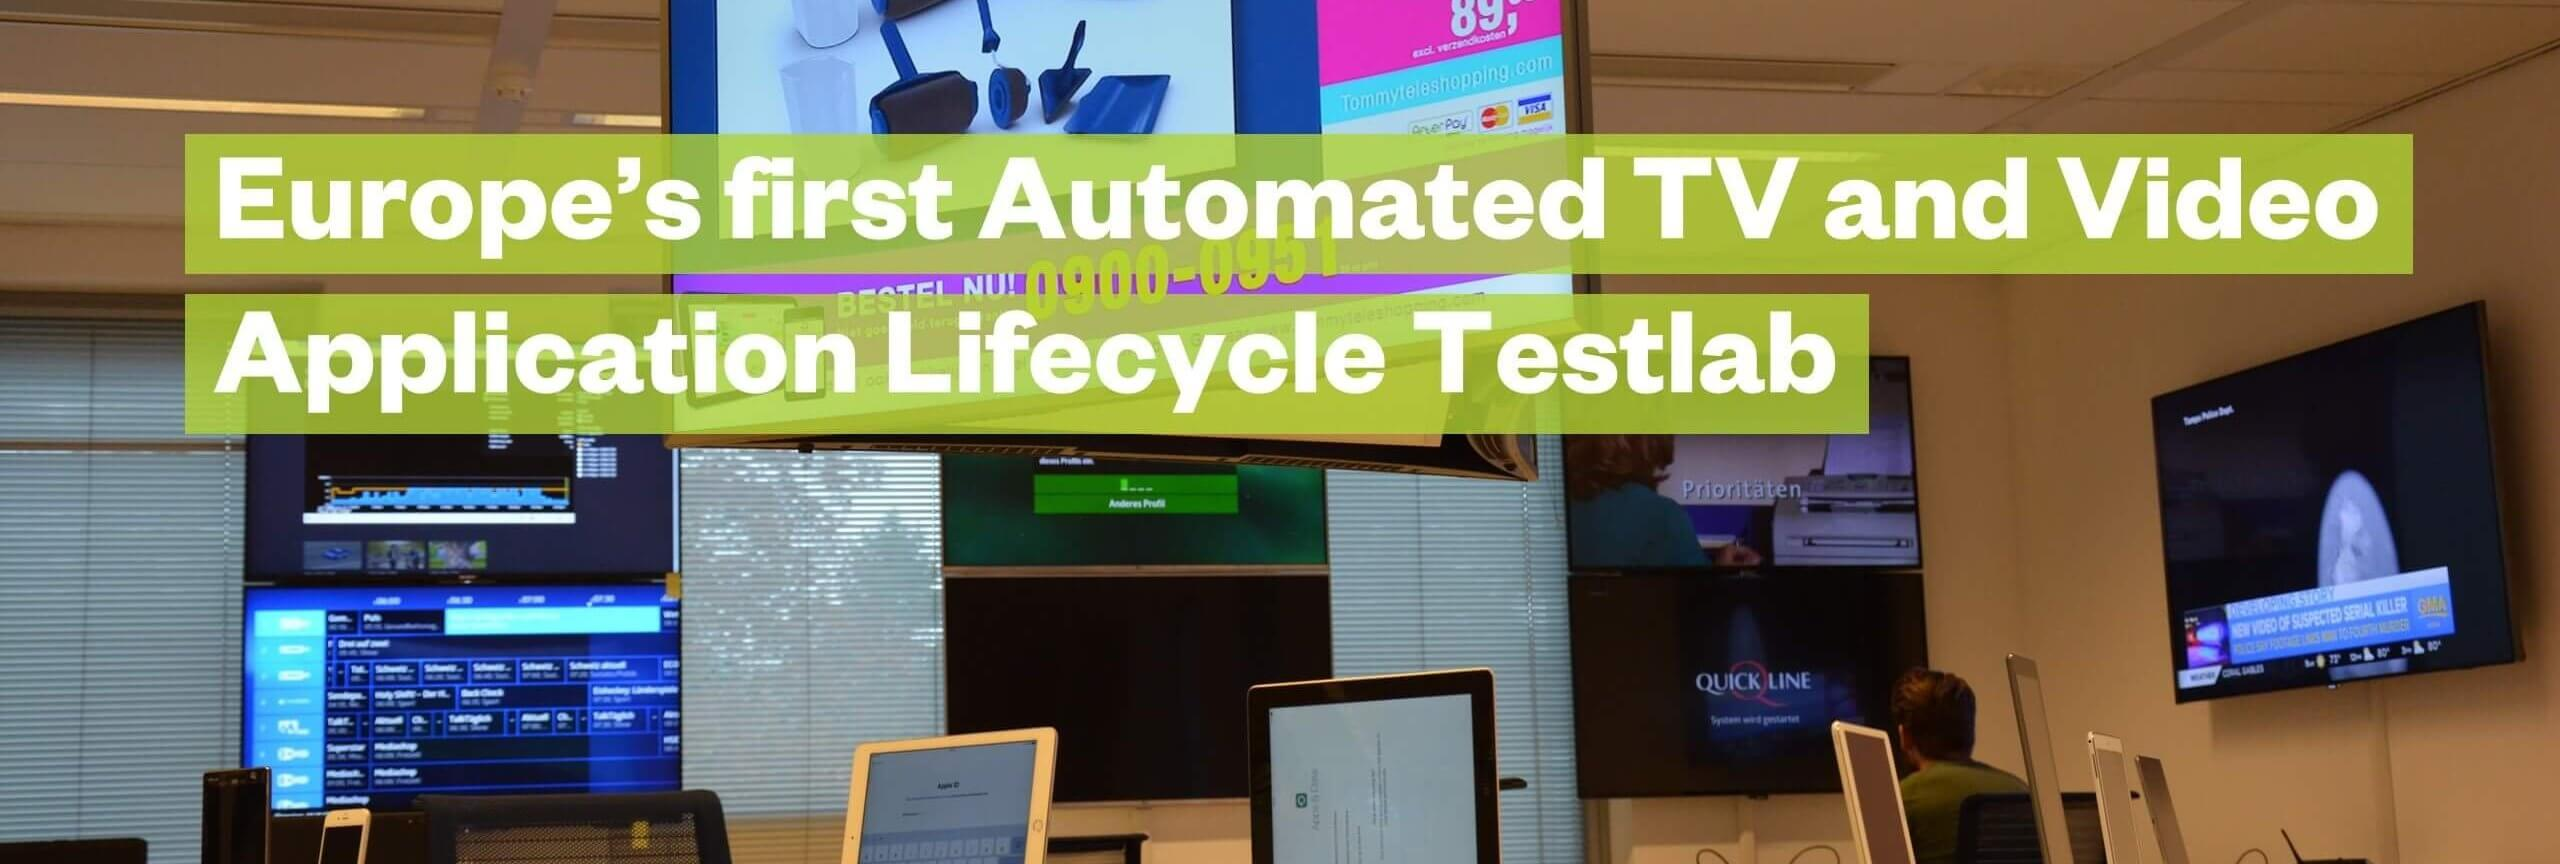 Automated TV and Video Application Lifecycle Testlab